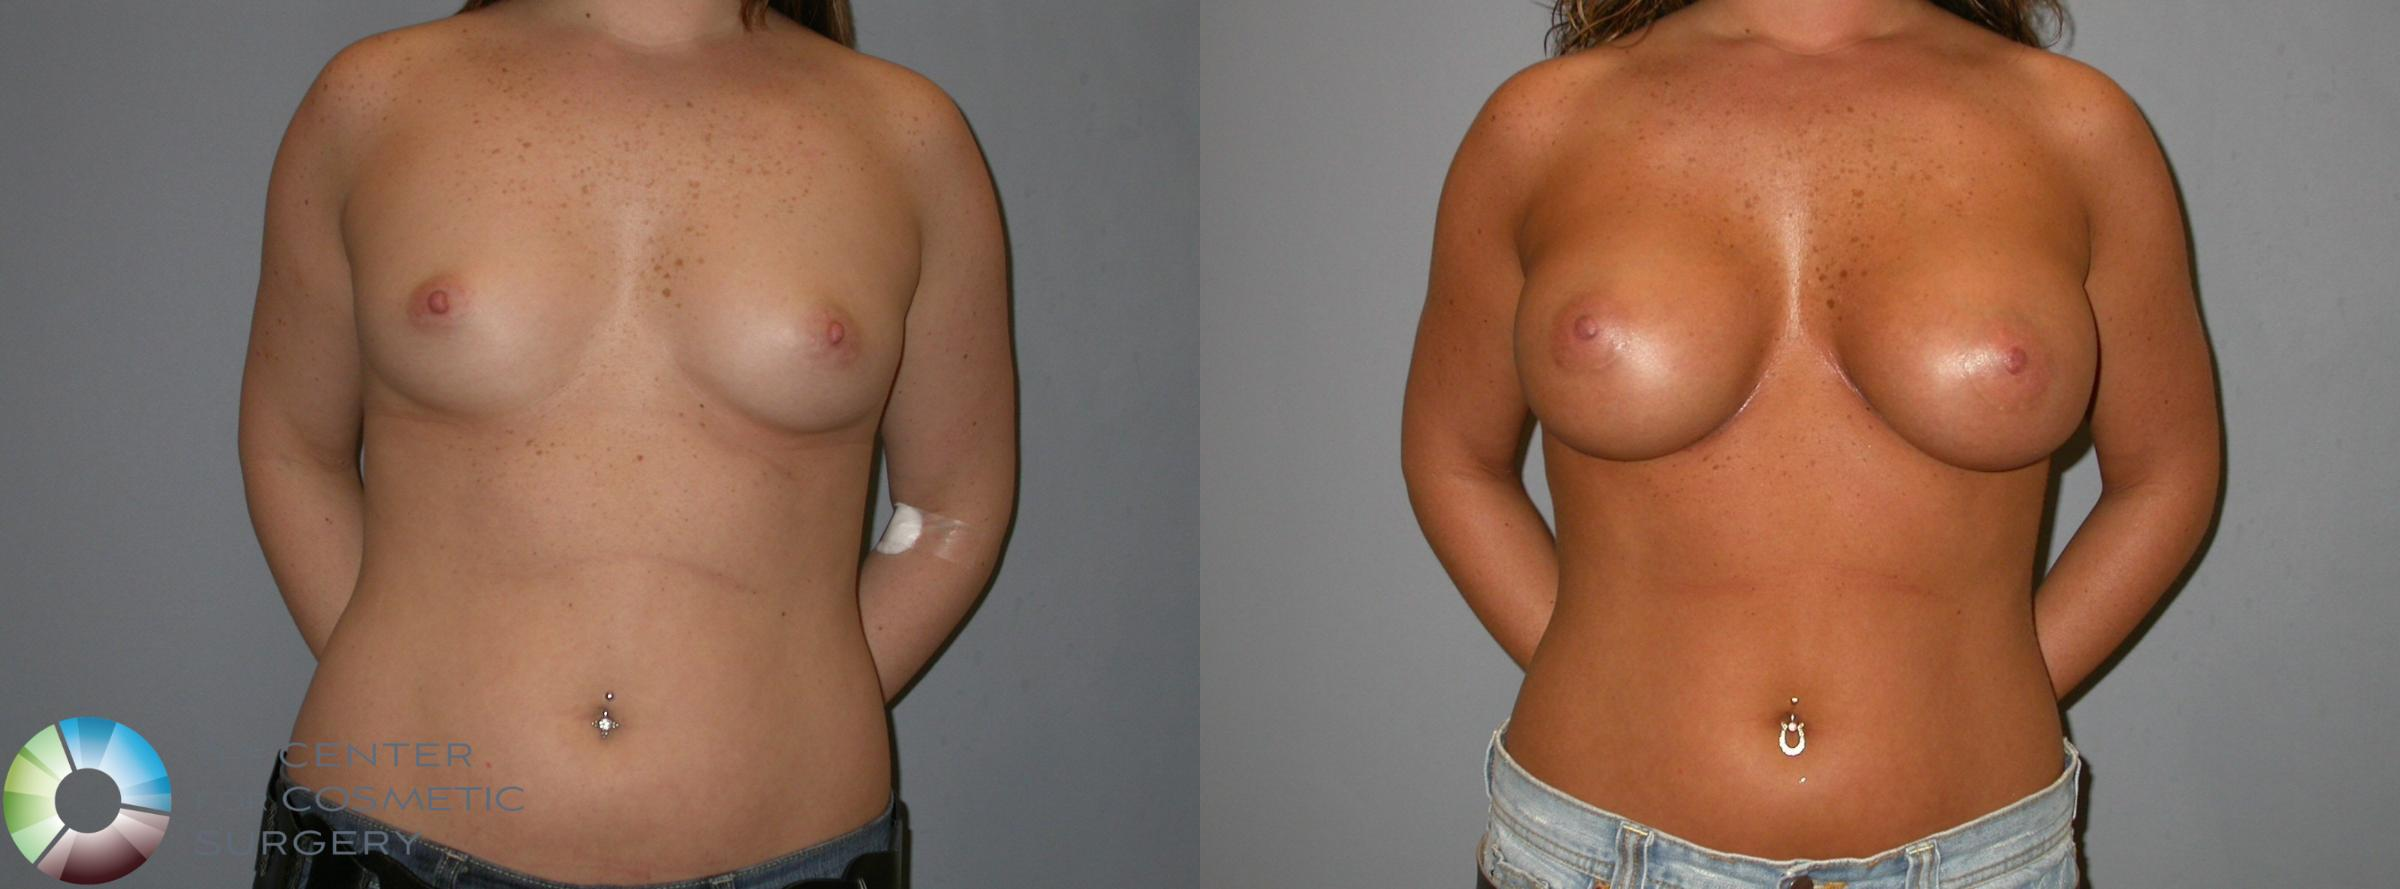 Breast Augmentation Case 139 Before & After View #2 | Golden, CO | The Center for Cosmetic Surgery